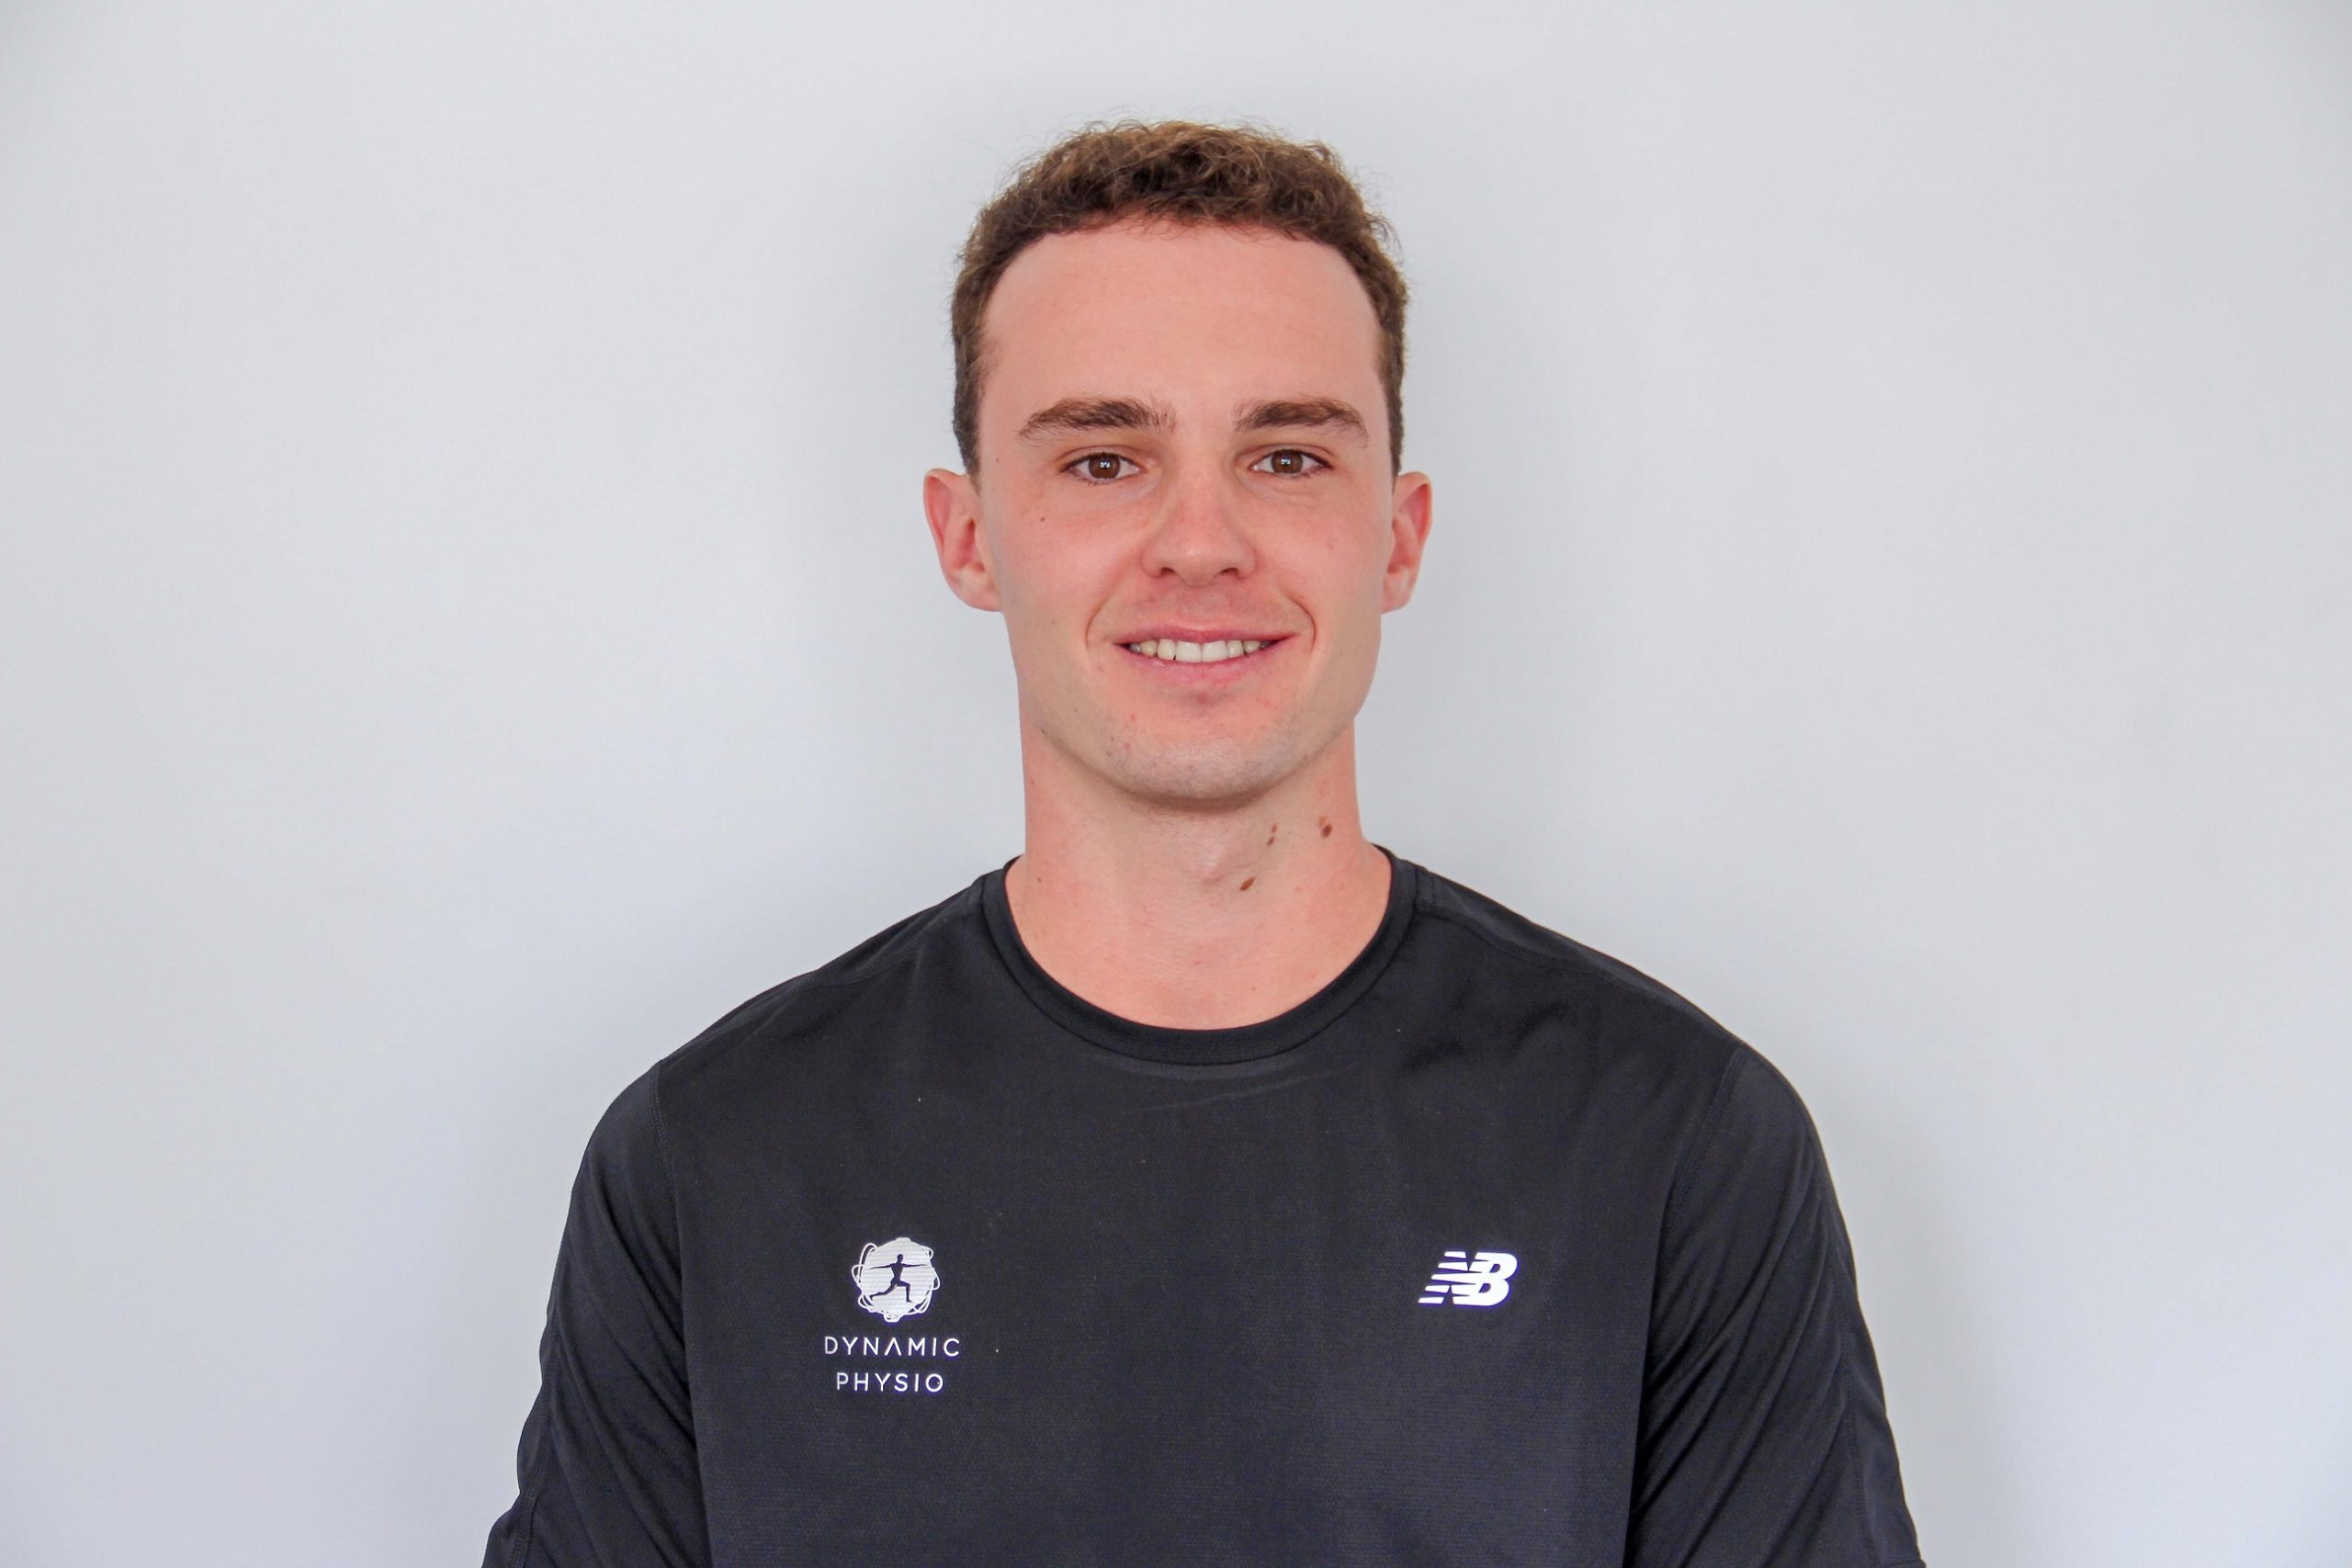 Zak Simpson - Physiotherapist